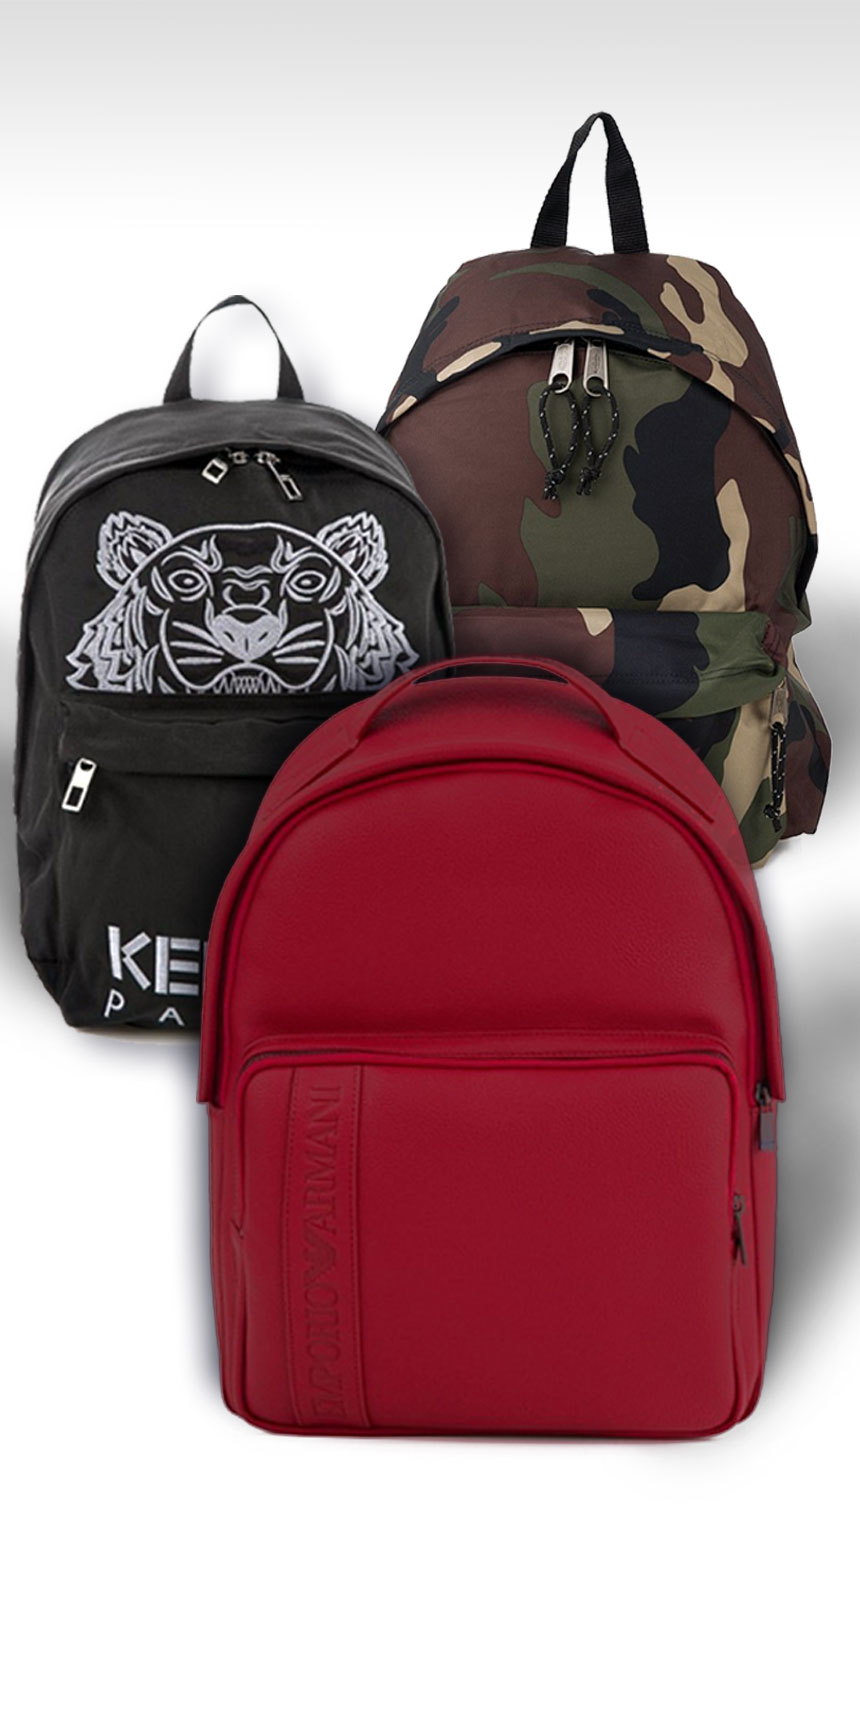 Pack it up! Five Backpacks for your travels